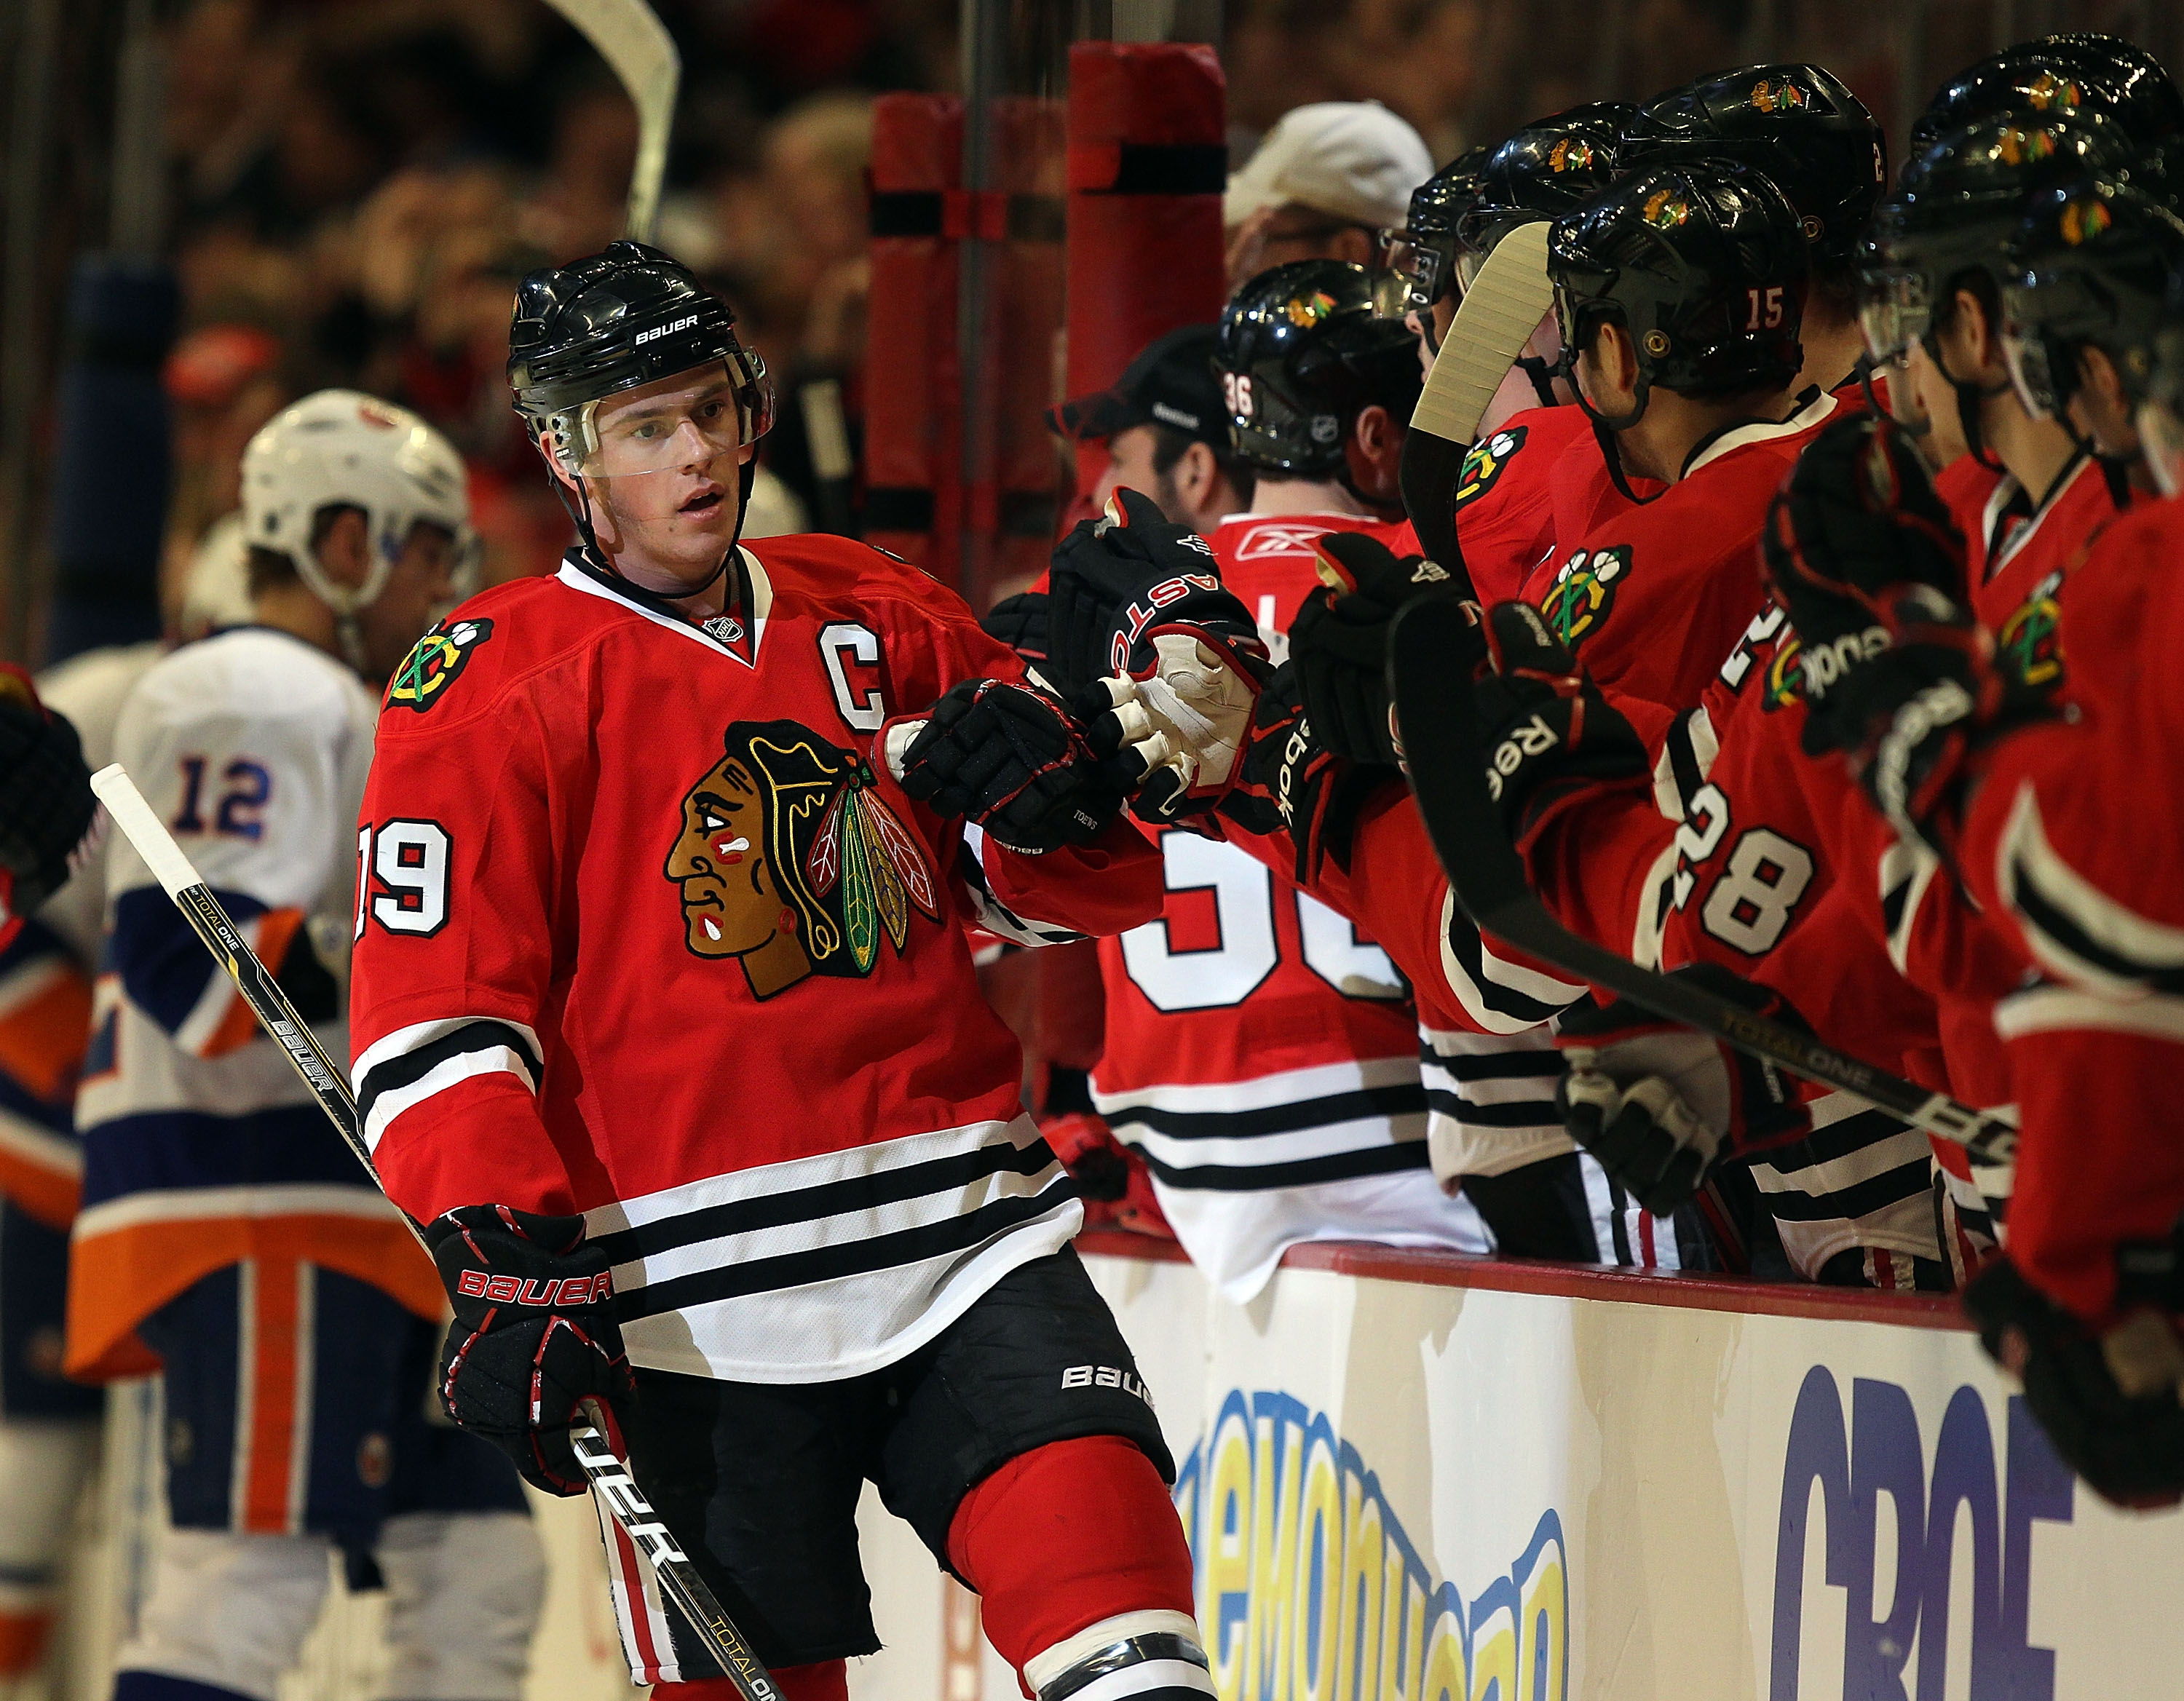 CHICAGO, IL - JANUARY 09: Jonathan Toews #19 of the Chicago Blackhawks is congratulated by teammates after a goal was scored by Patrick Sharp against the New York Islanders at the United Center on January 9, 2011 in Chicago, Illinois. The Blackhawks defea